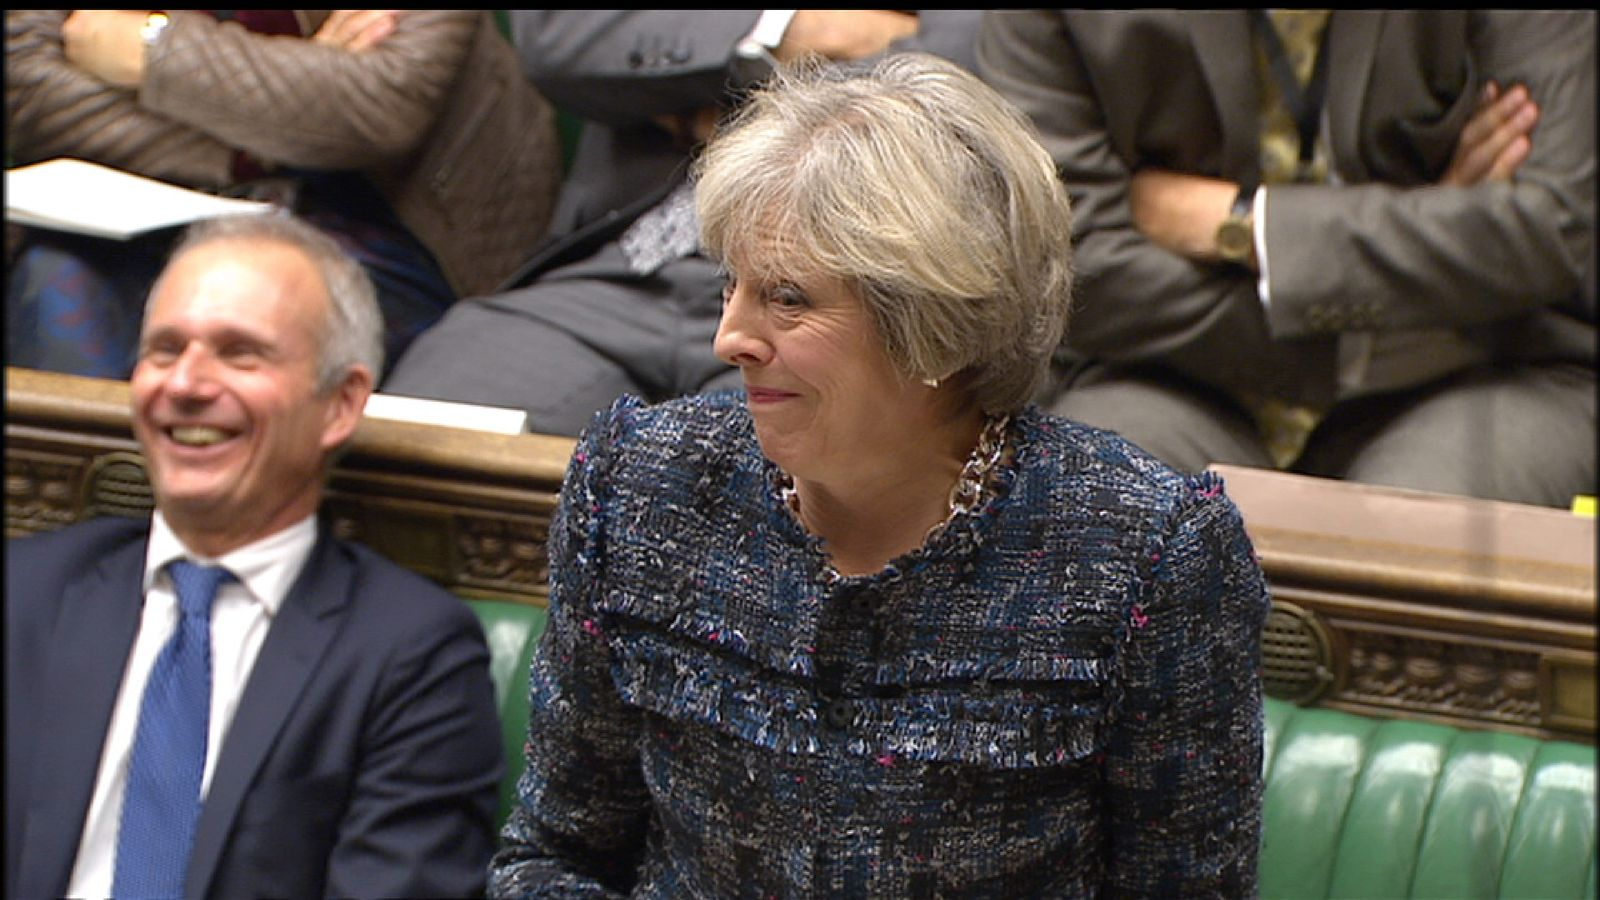 Theresa May gets an unintentional laugh in the House